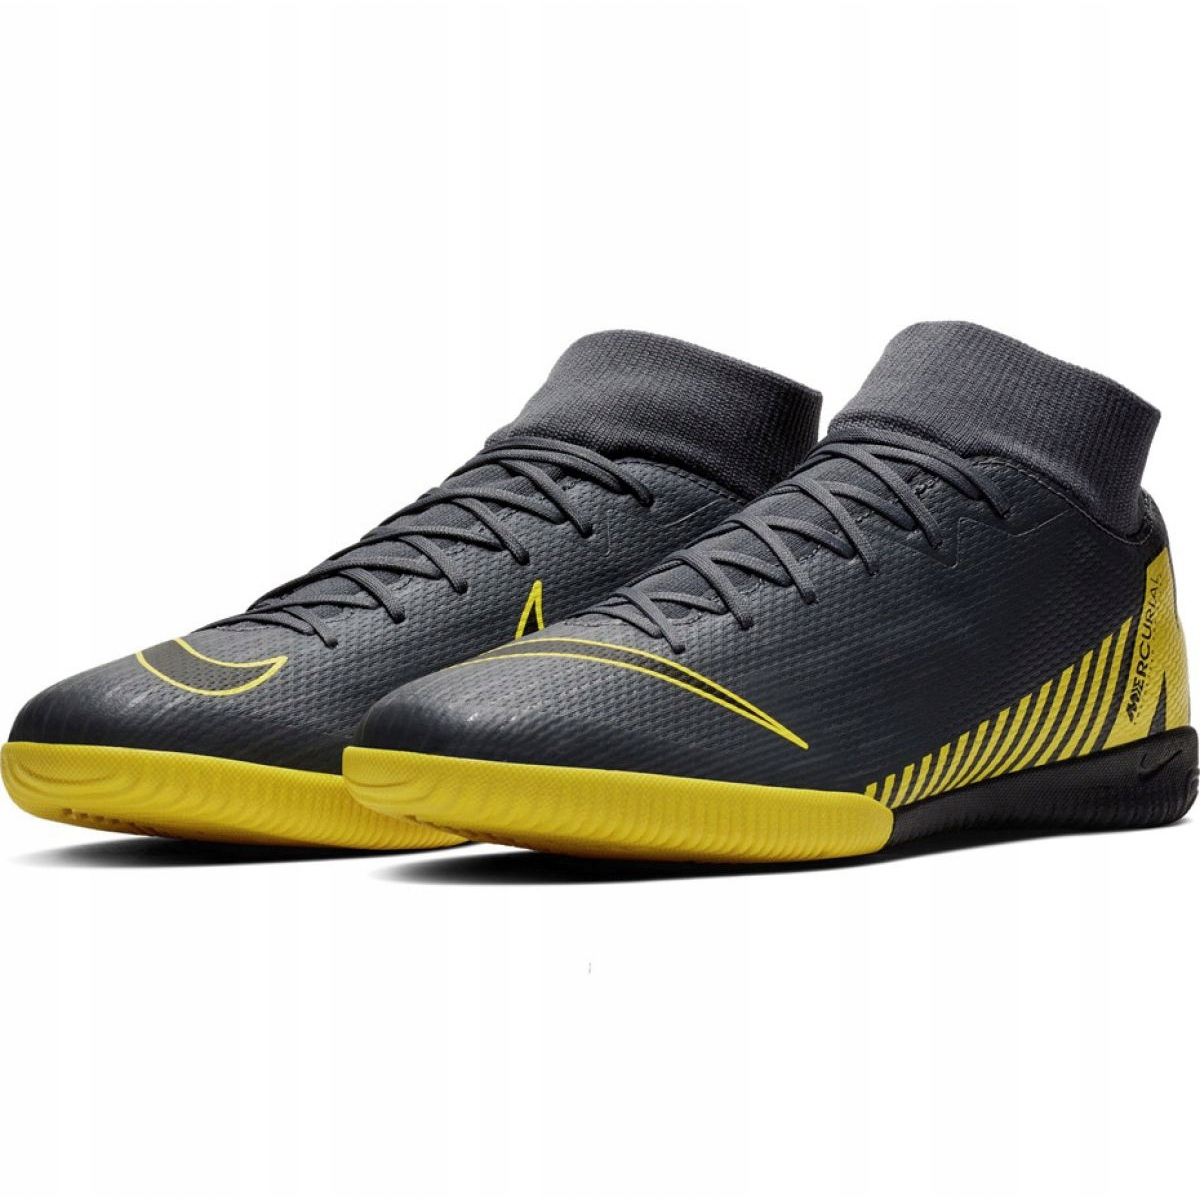 buy online bc112 a2ba6 Indoor shoes Nike Mercurial Superfly 6 Academy Ic M AH7369-070